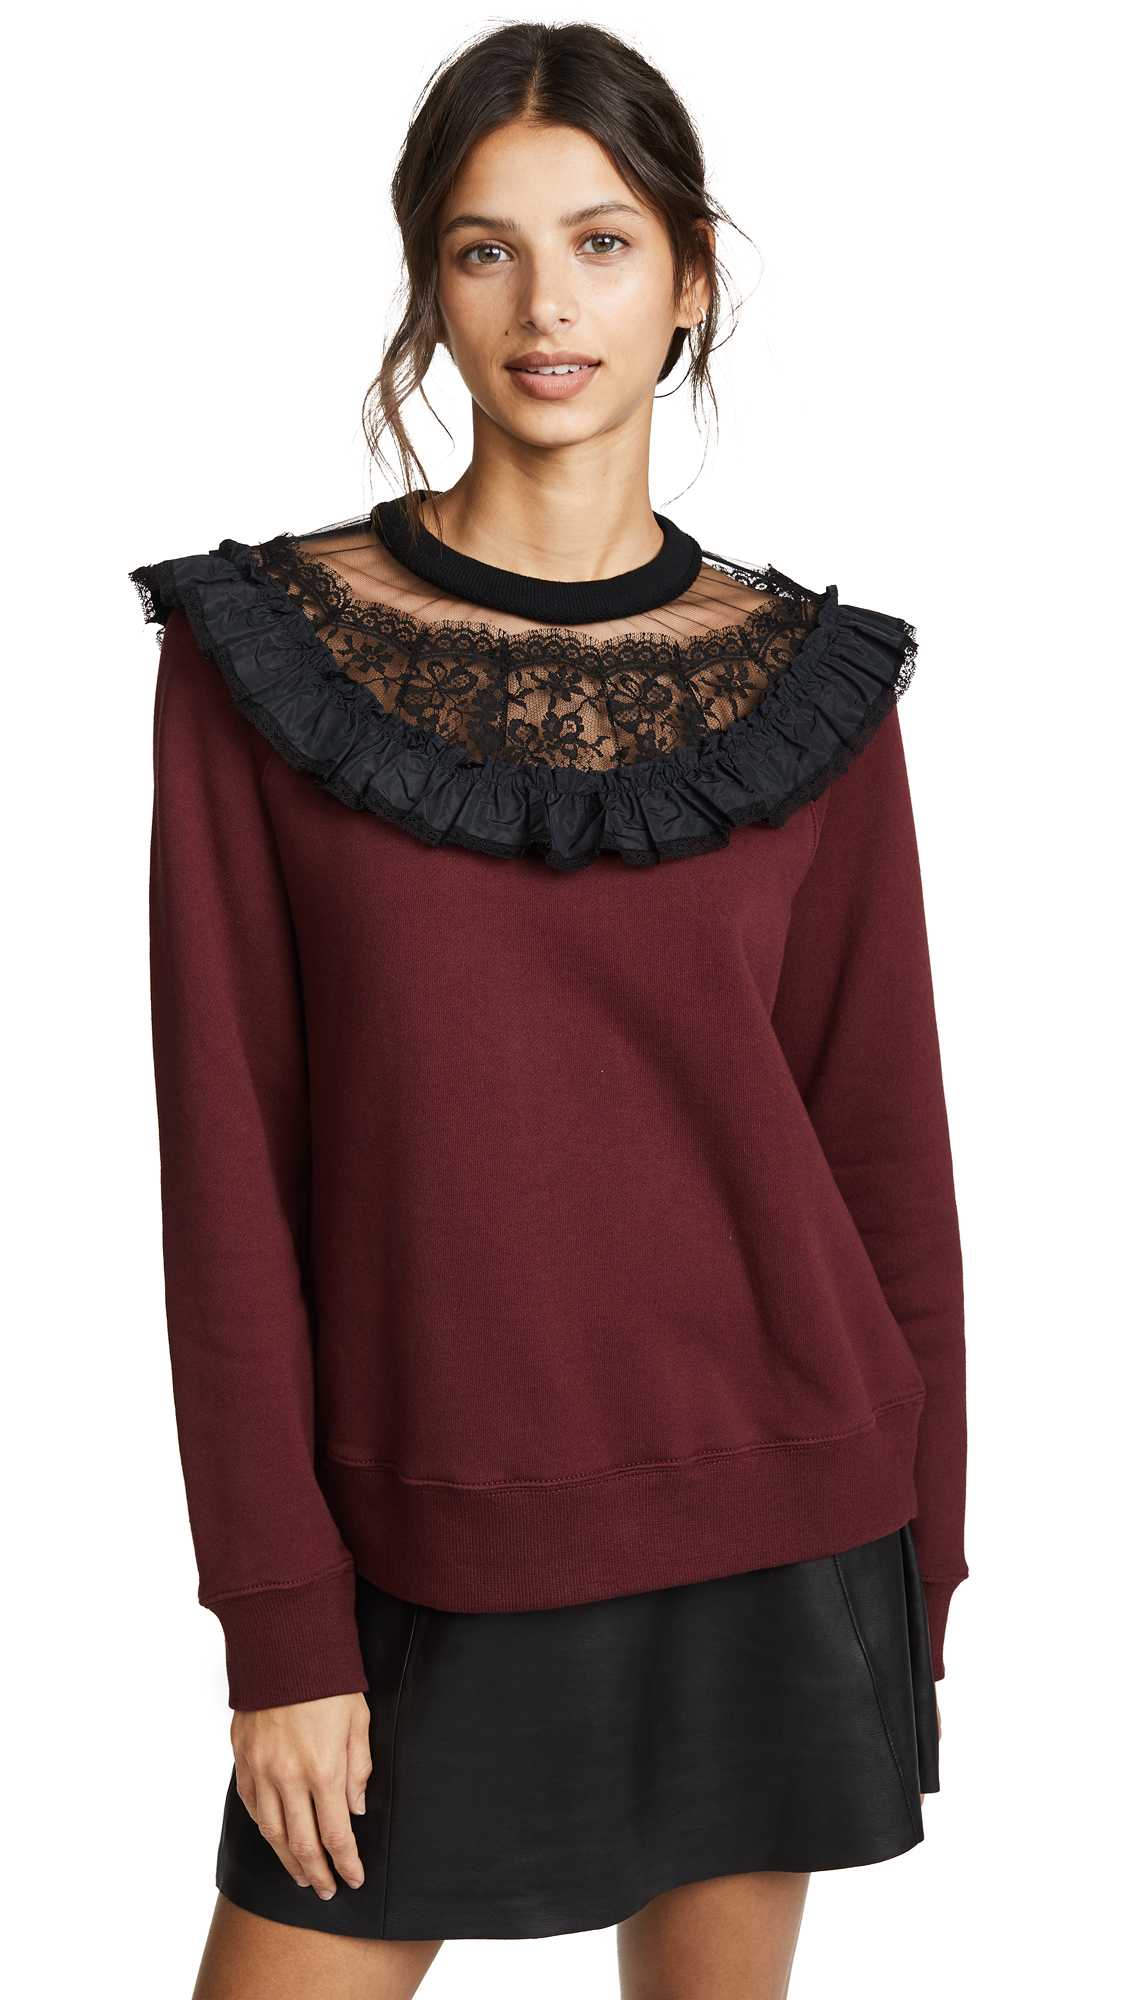 Marc Jacobs Ruffle Sweatshirt with Lace In Burgundy